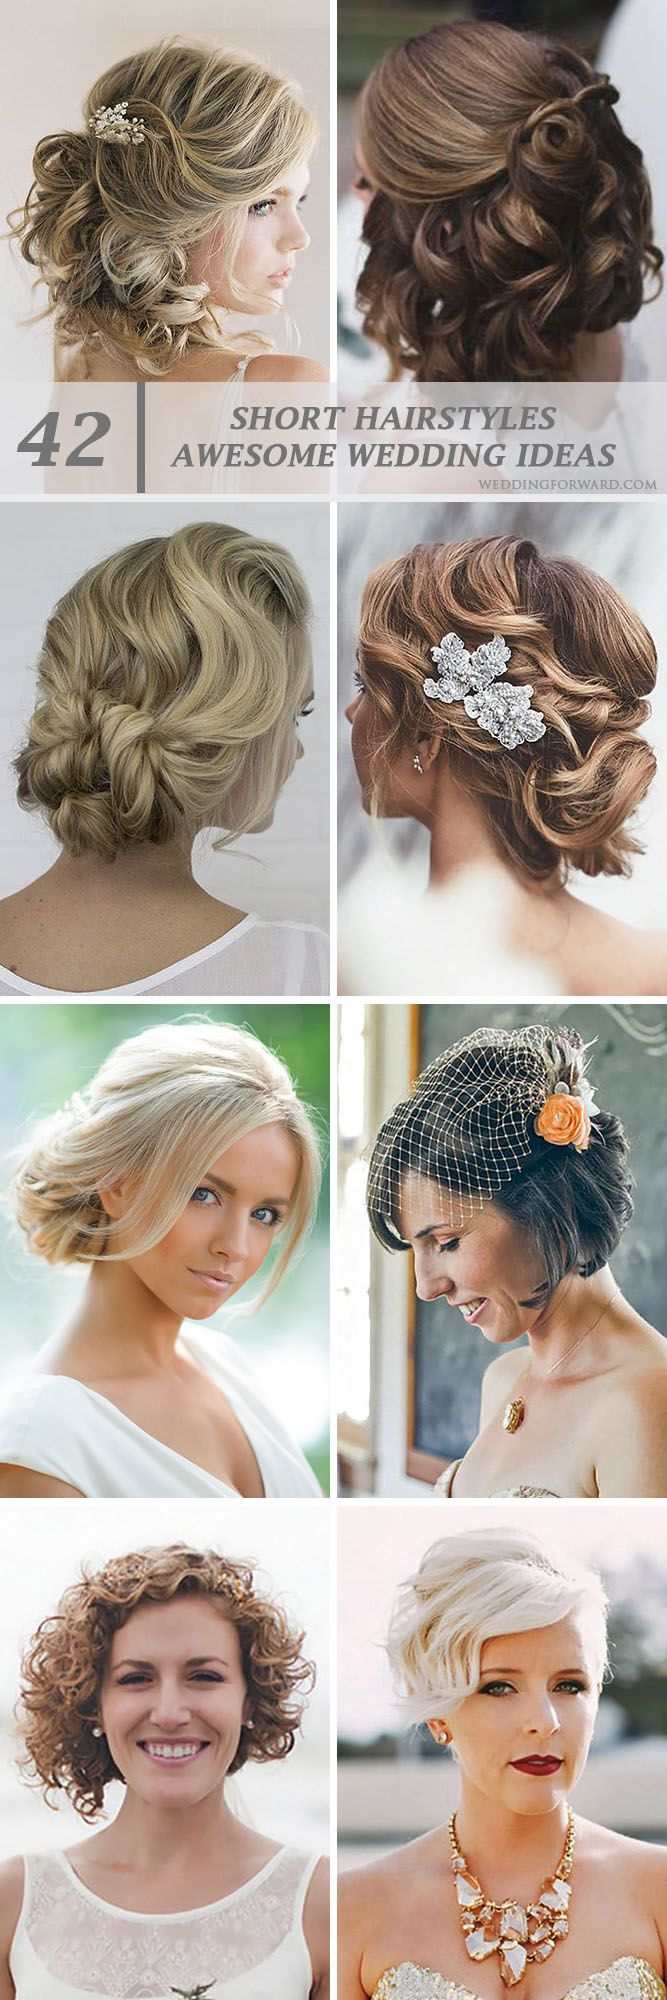 The 25+ best Short wedding hairstyles ideas on Pinterest ...